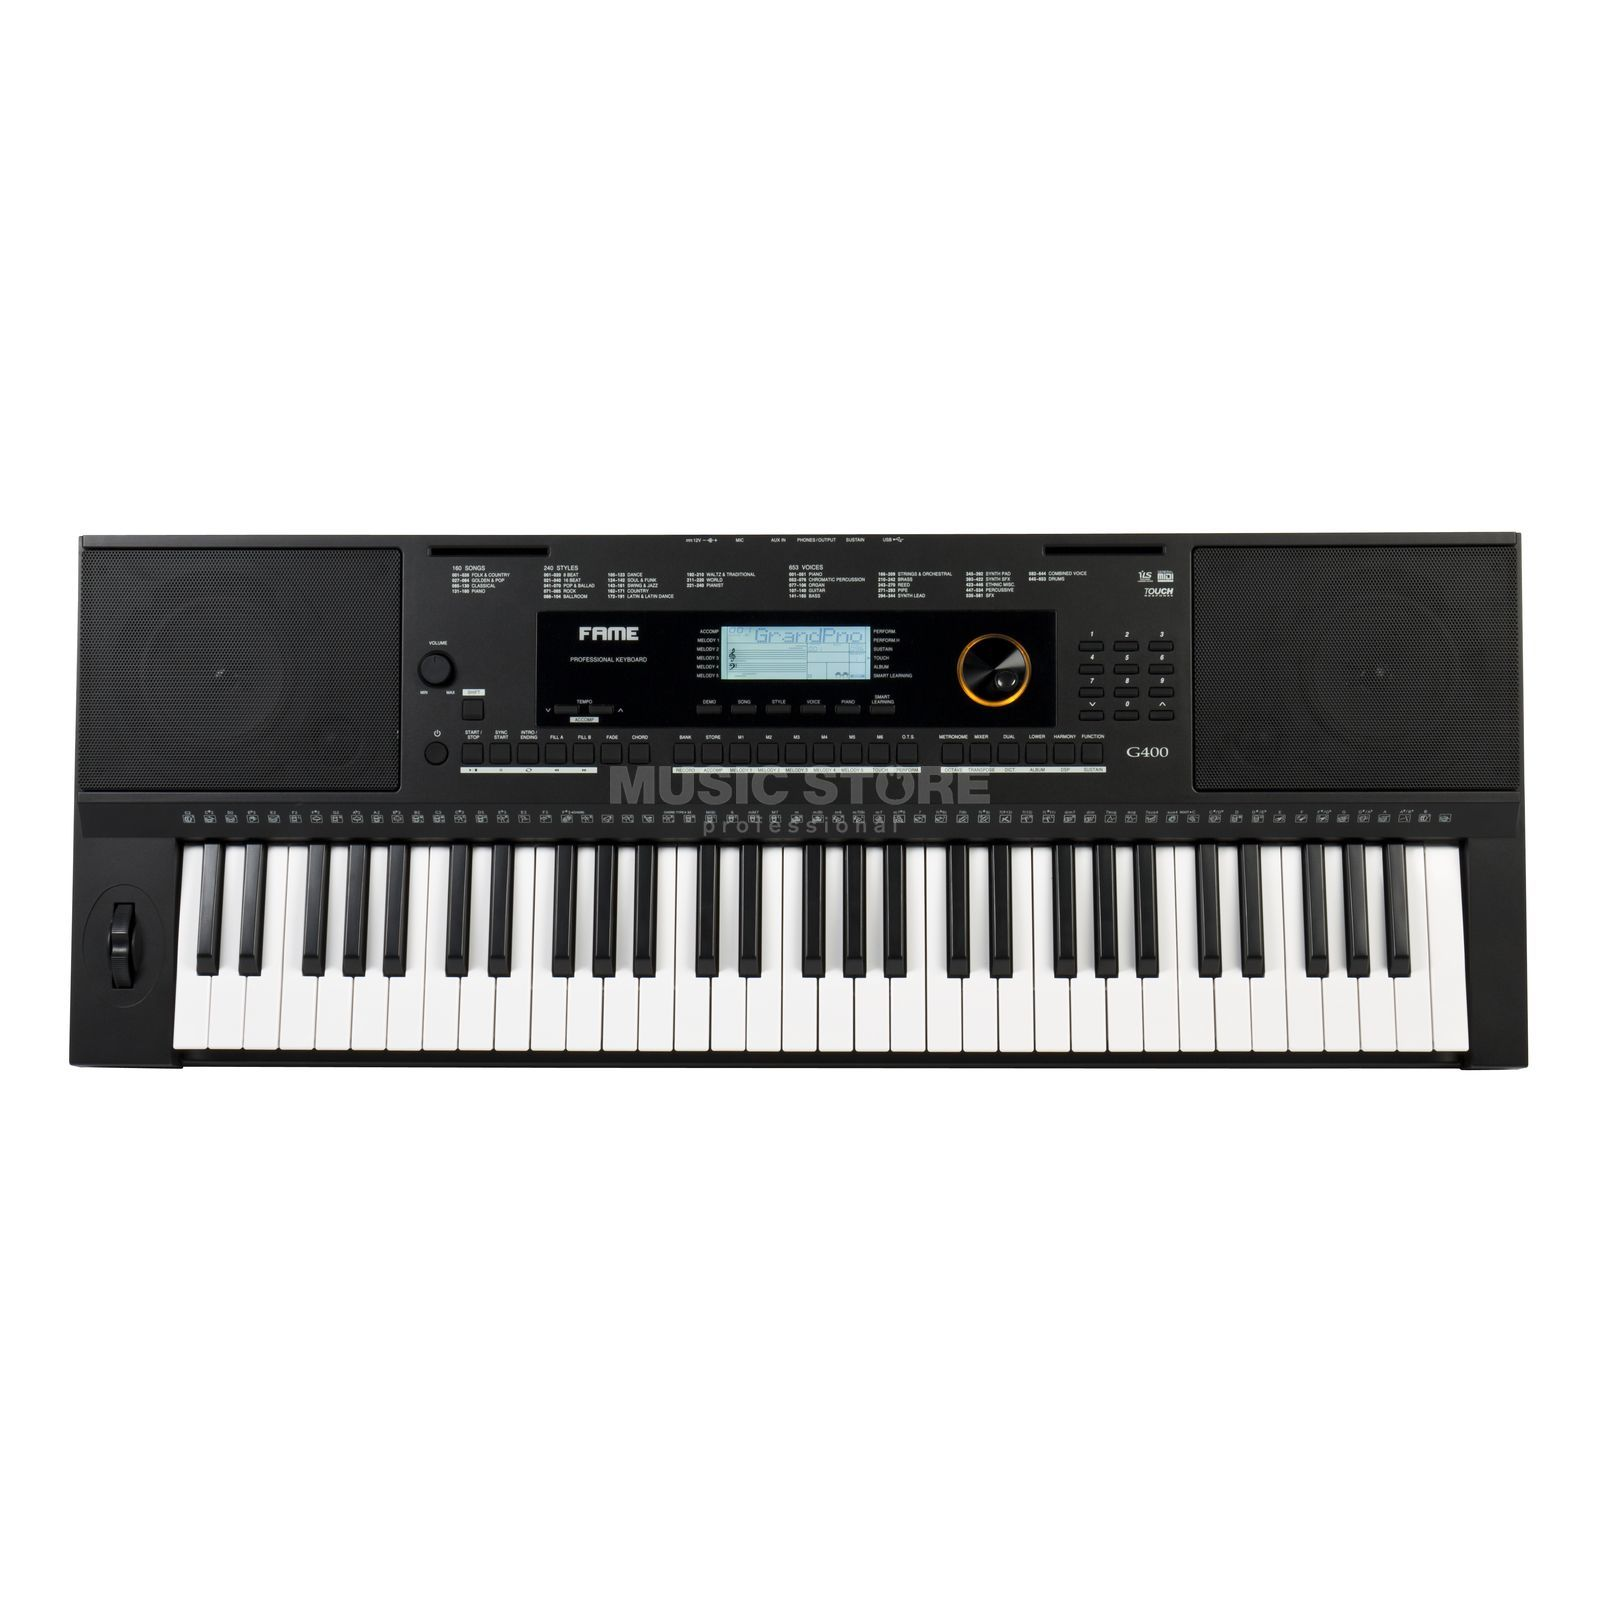 Fame G-400 Keyboard Product Image